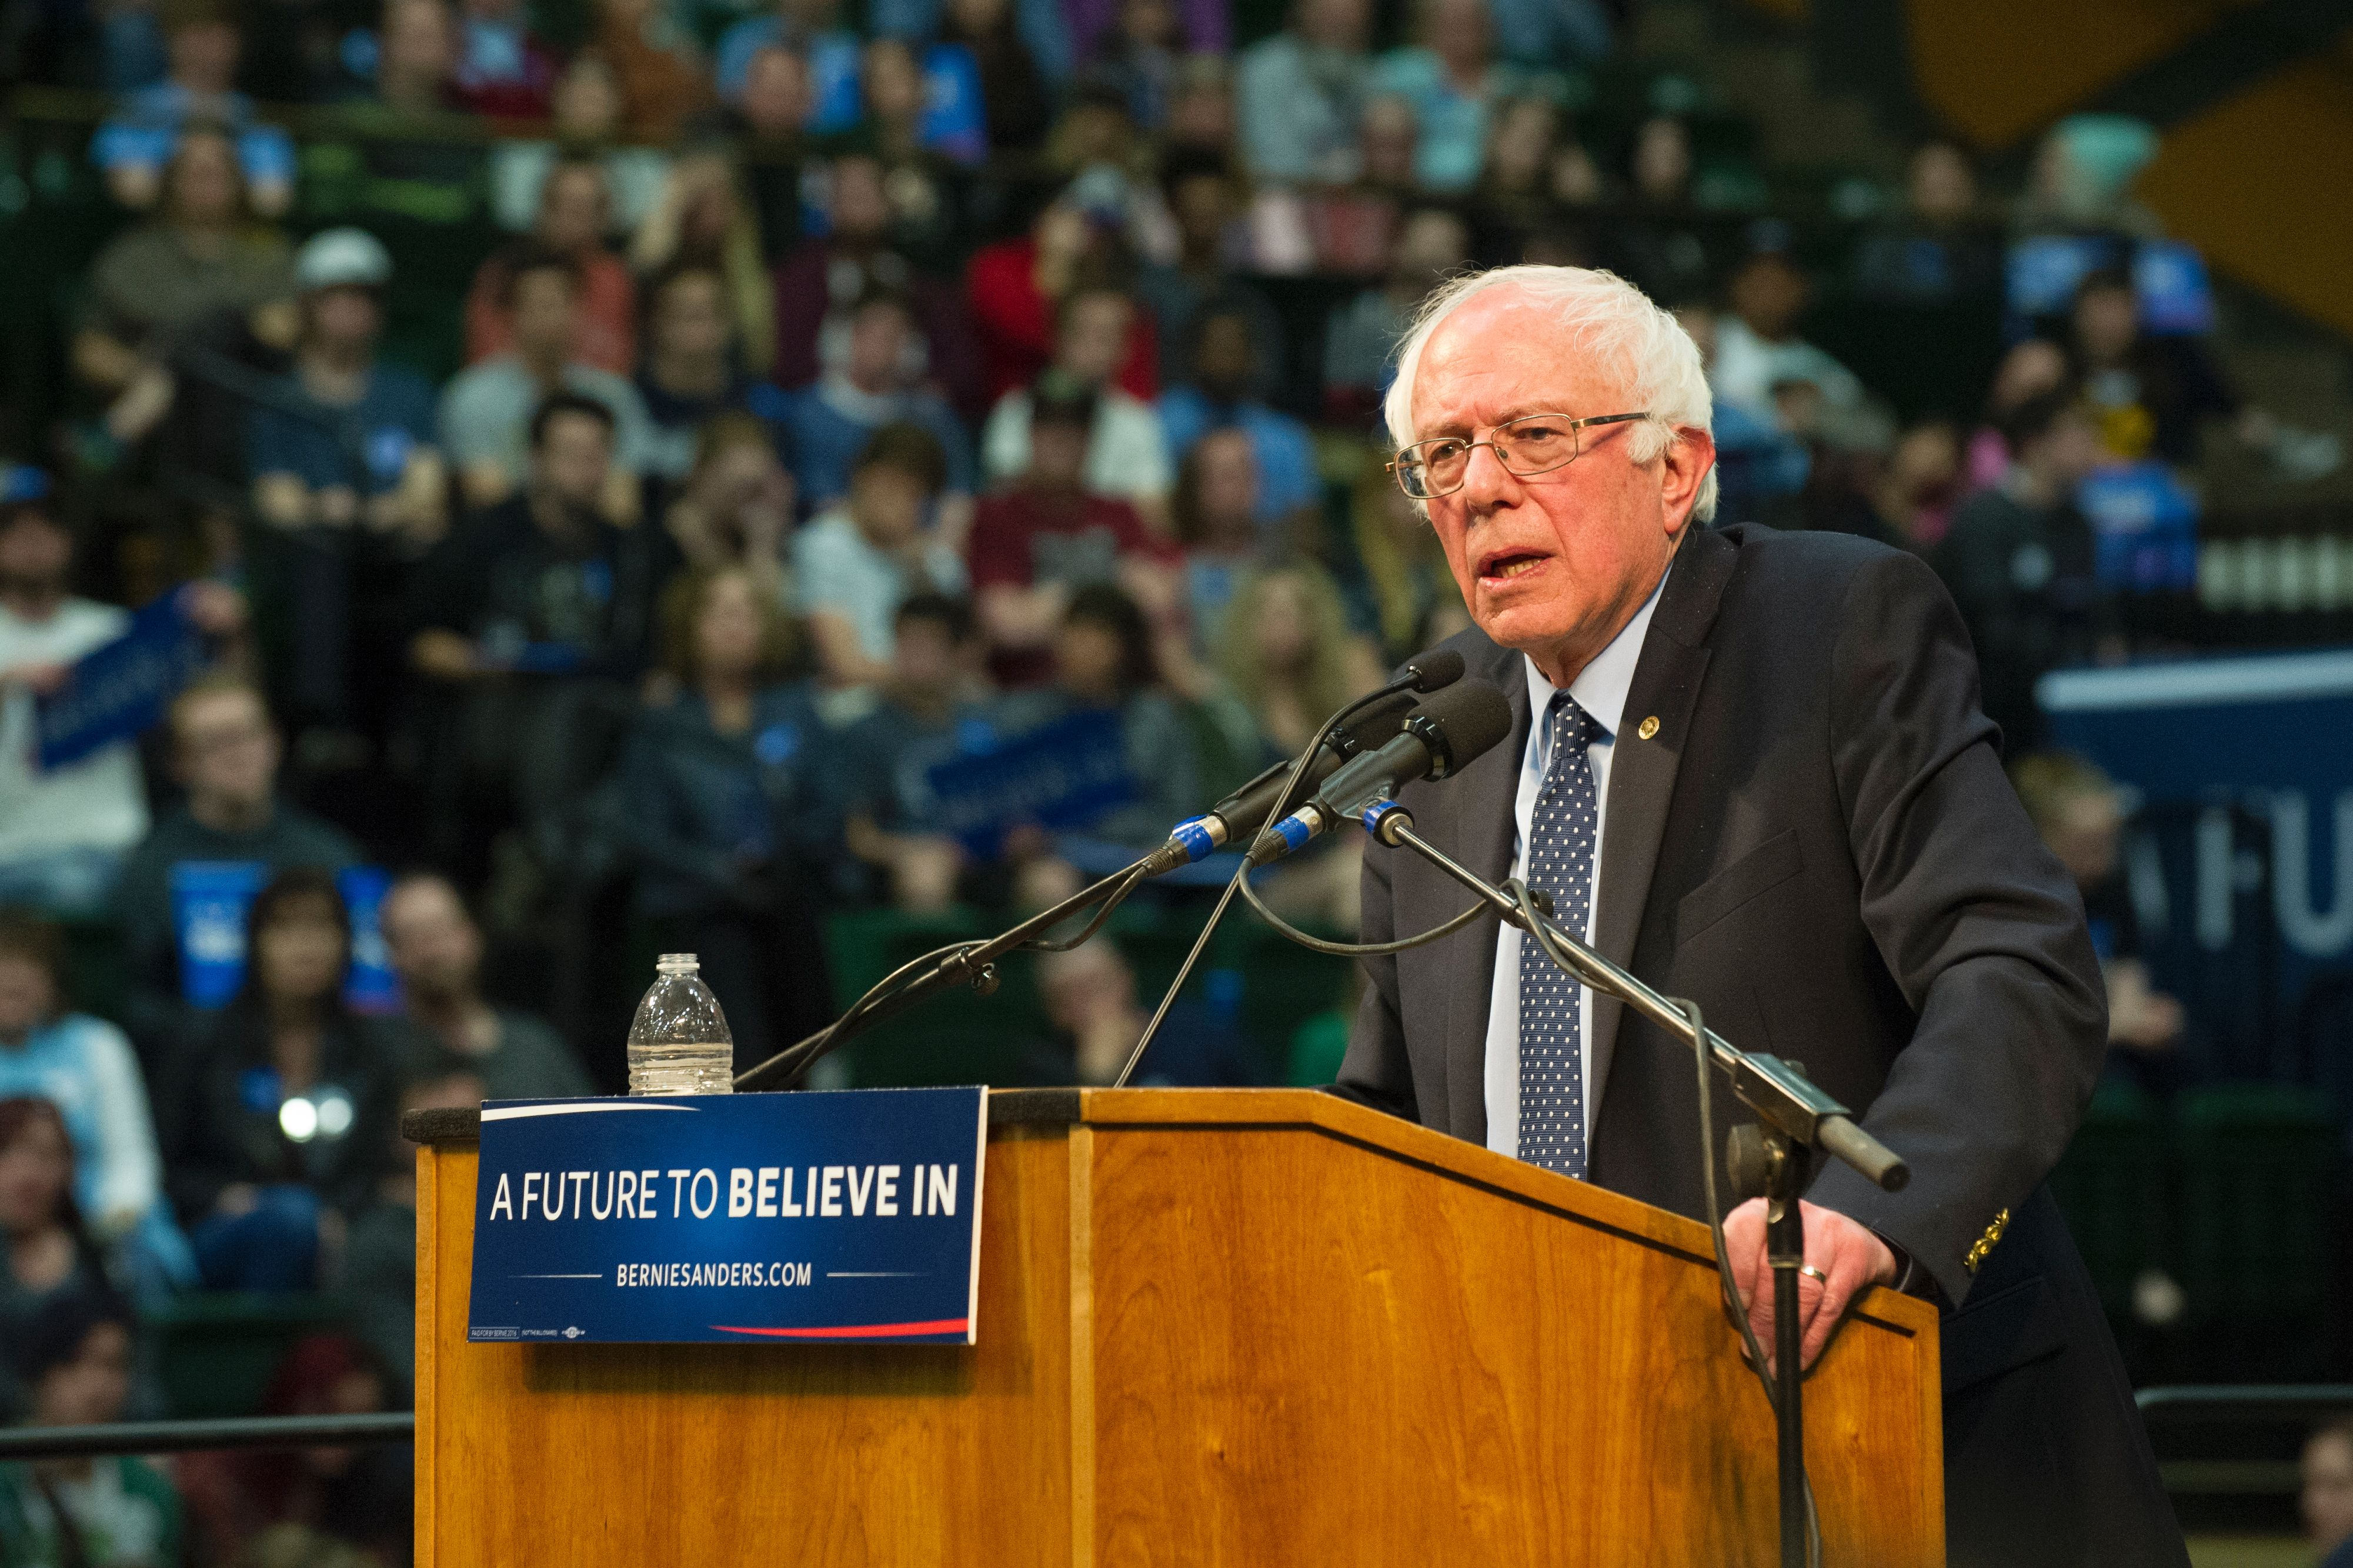 Democratic presidential candidate Bernie Sanders addresses a rally at Colorado State University's Moby Arena in Ft. Collins, Colorado, February 28, 2016. (credit: JASON CONNOLLY/AFP/Getty Images)